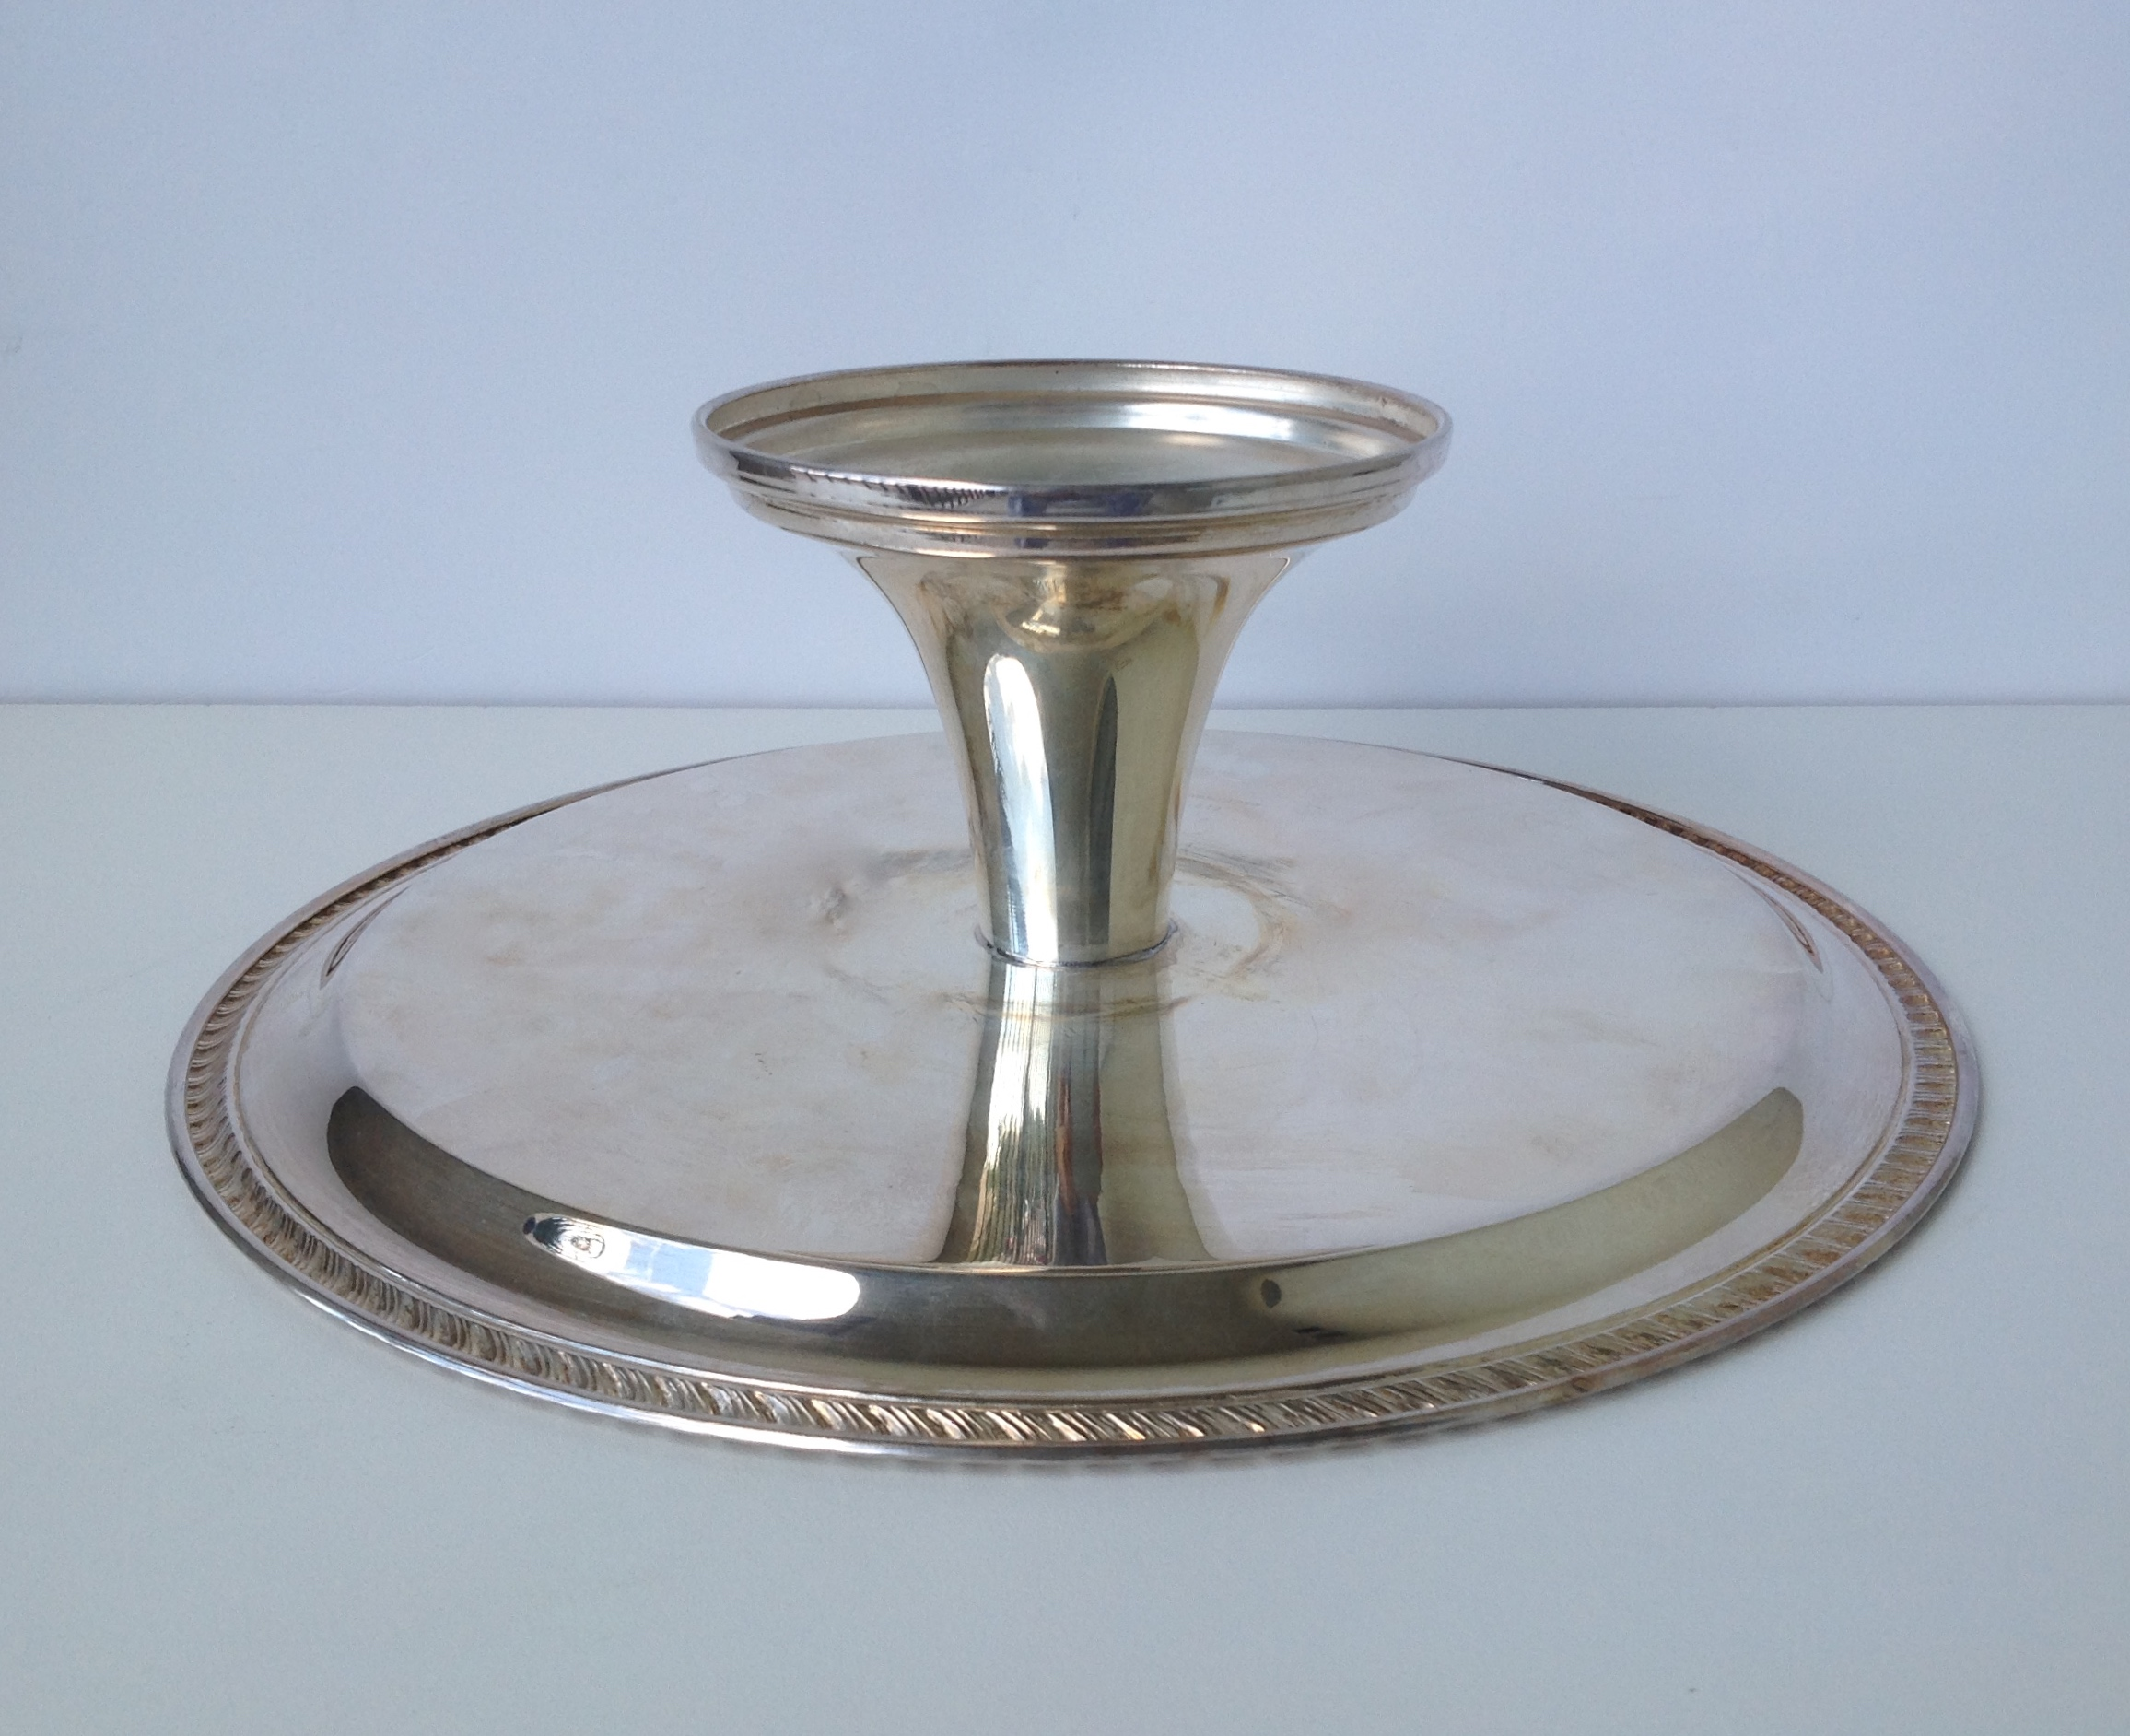 Wm. Rogers Vintage Silver-Plated Footed Cake Stand - Image 8 of 9  sc 1 st  Chairish & Wm. Rogers Vintage Silver-Plated Footed Cake Stand   Chairish